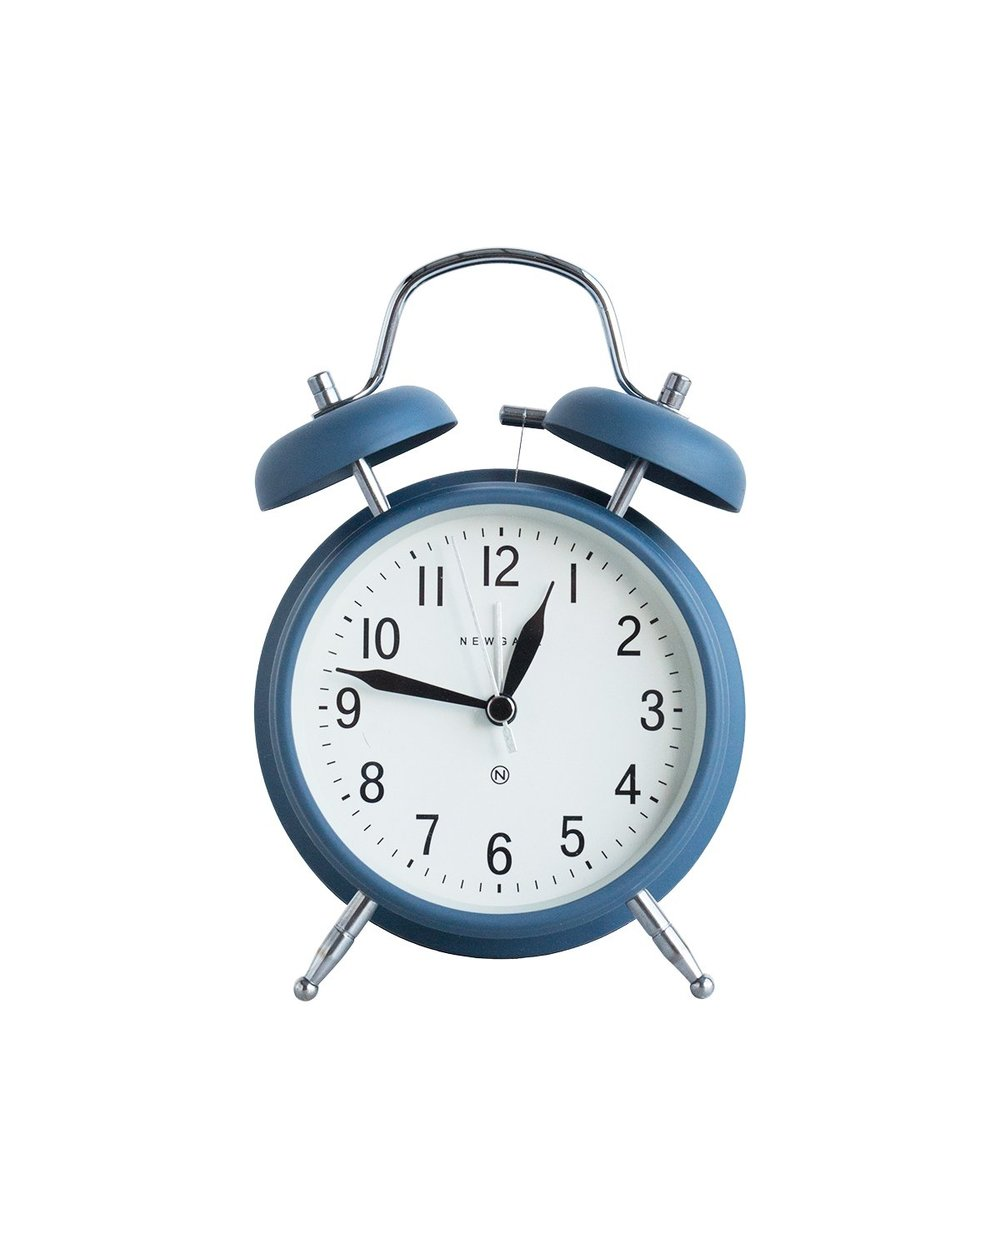 Greenwich_Alarm_Clock_3.jpg